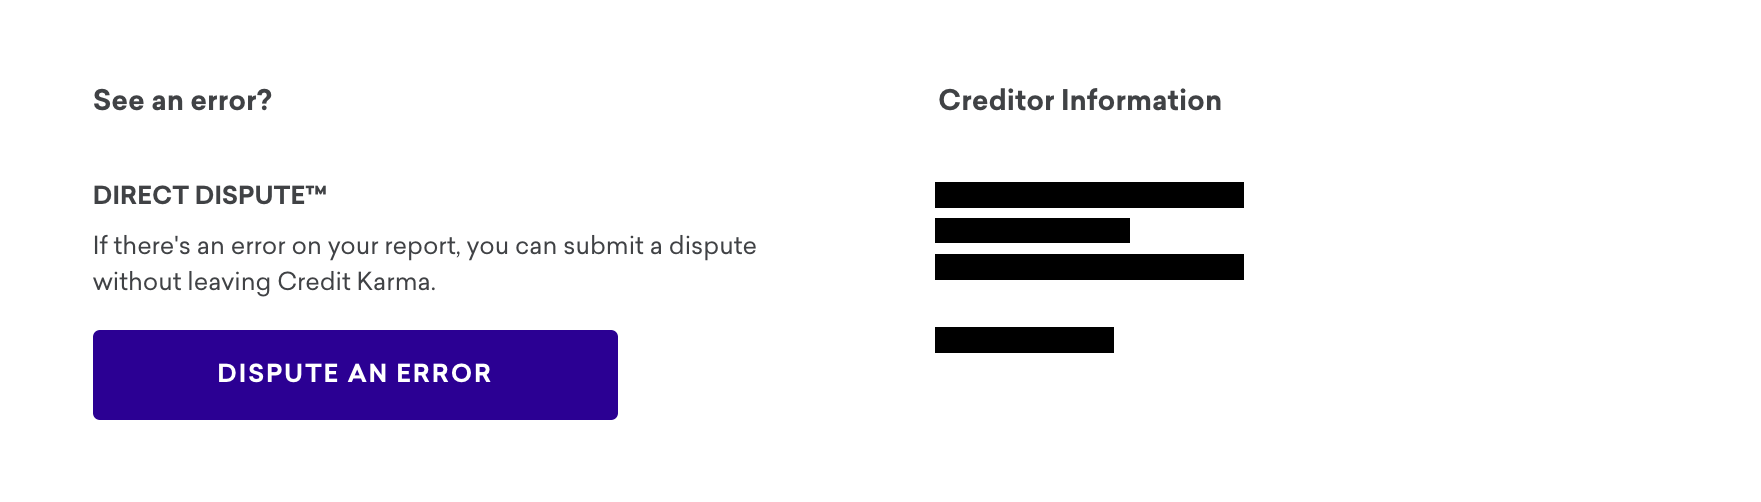 if you spot any errors on your transunion credit report you can dispute them through credit karmas direct dispute tool